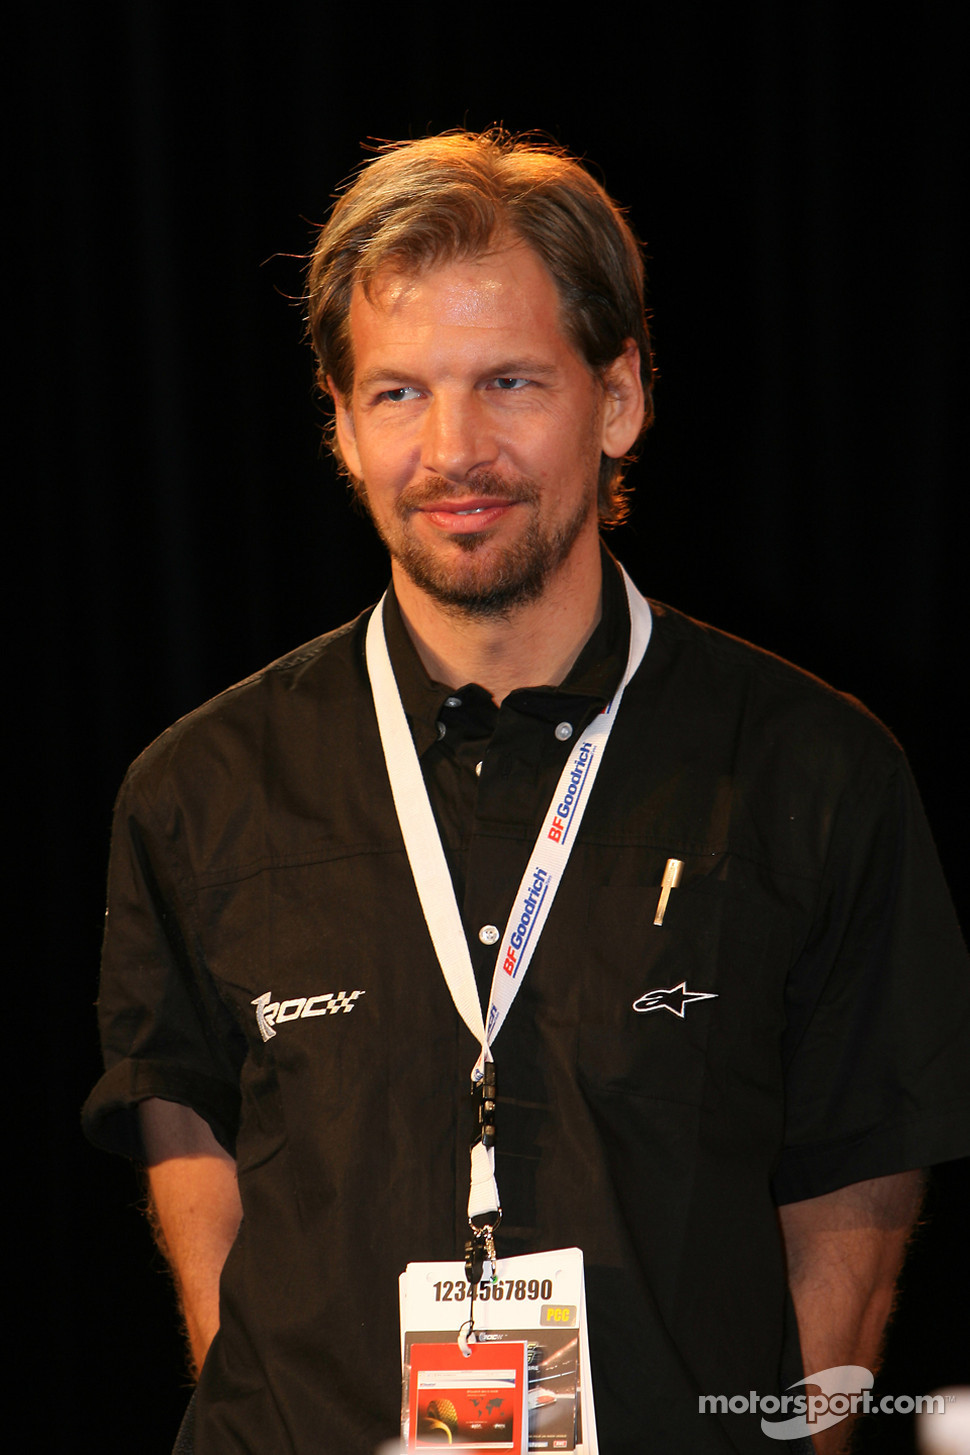 ROC organiser Fredrik Johnsson